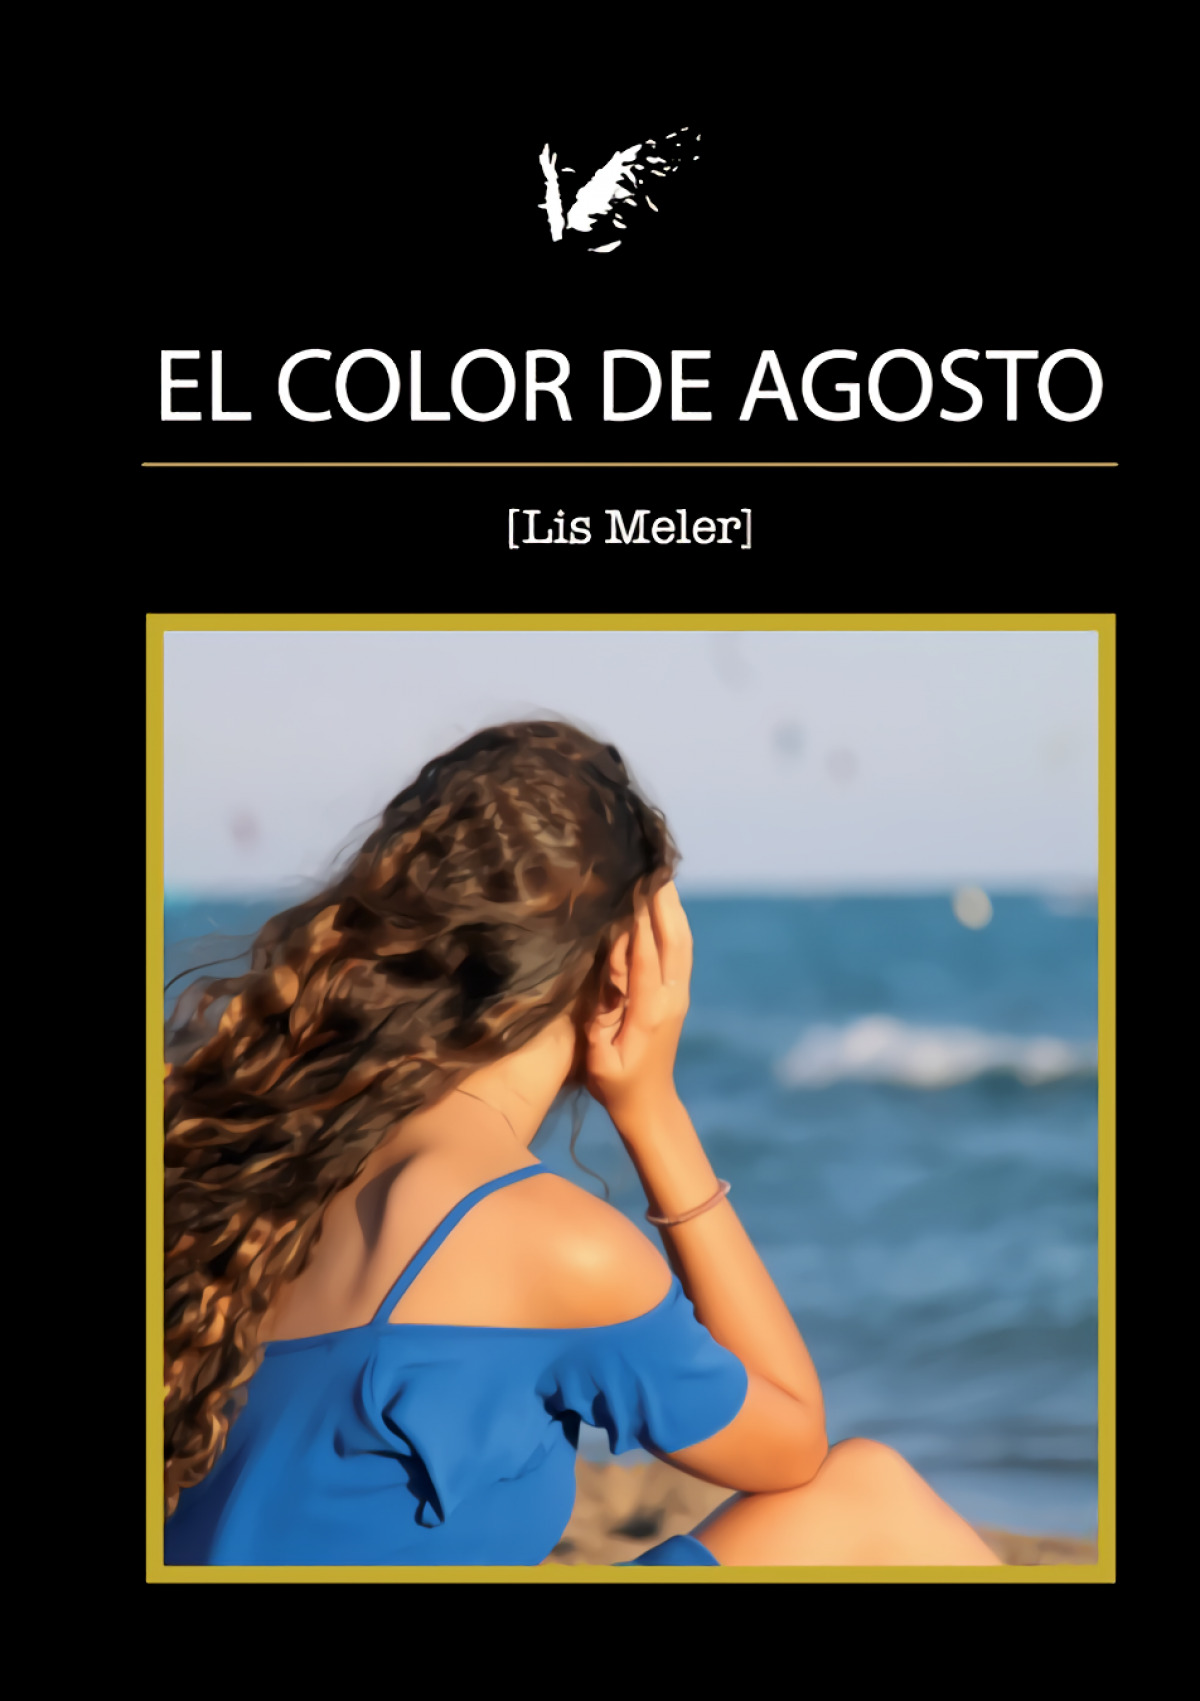 El color de agosto